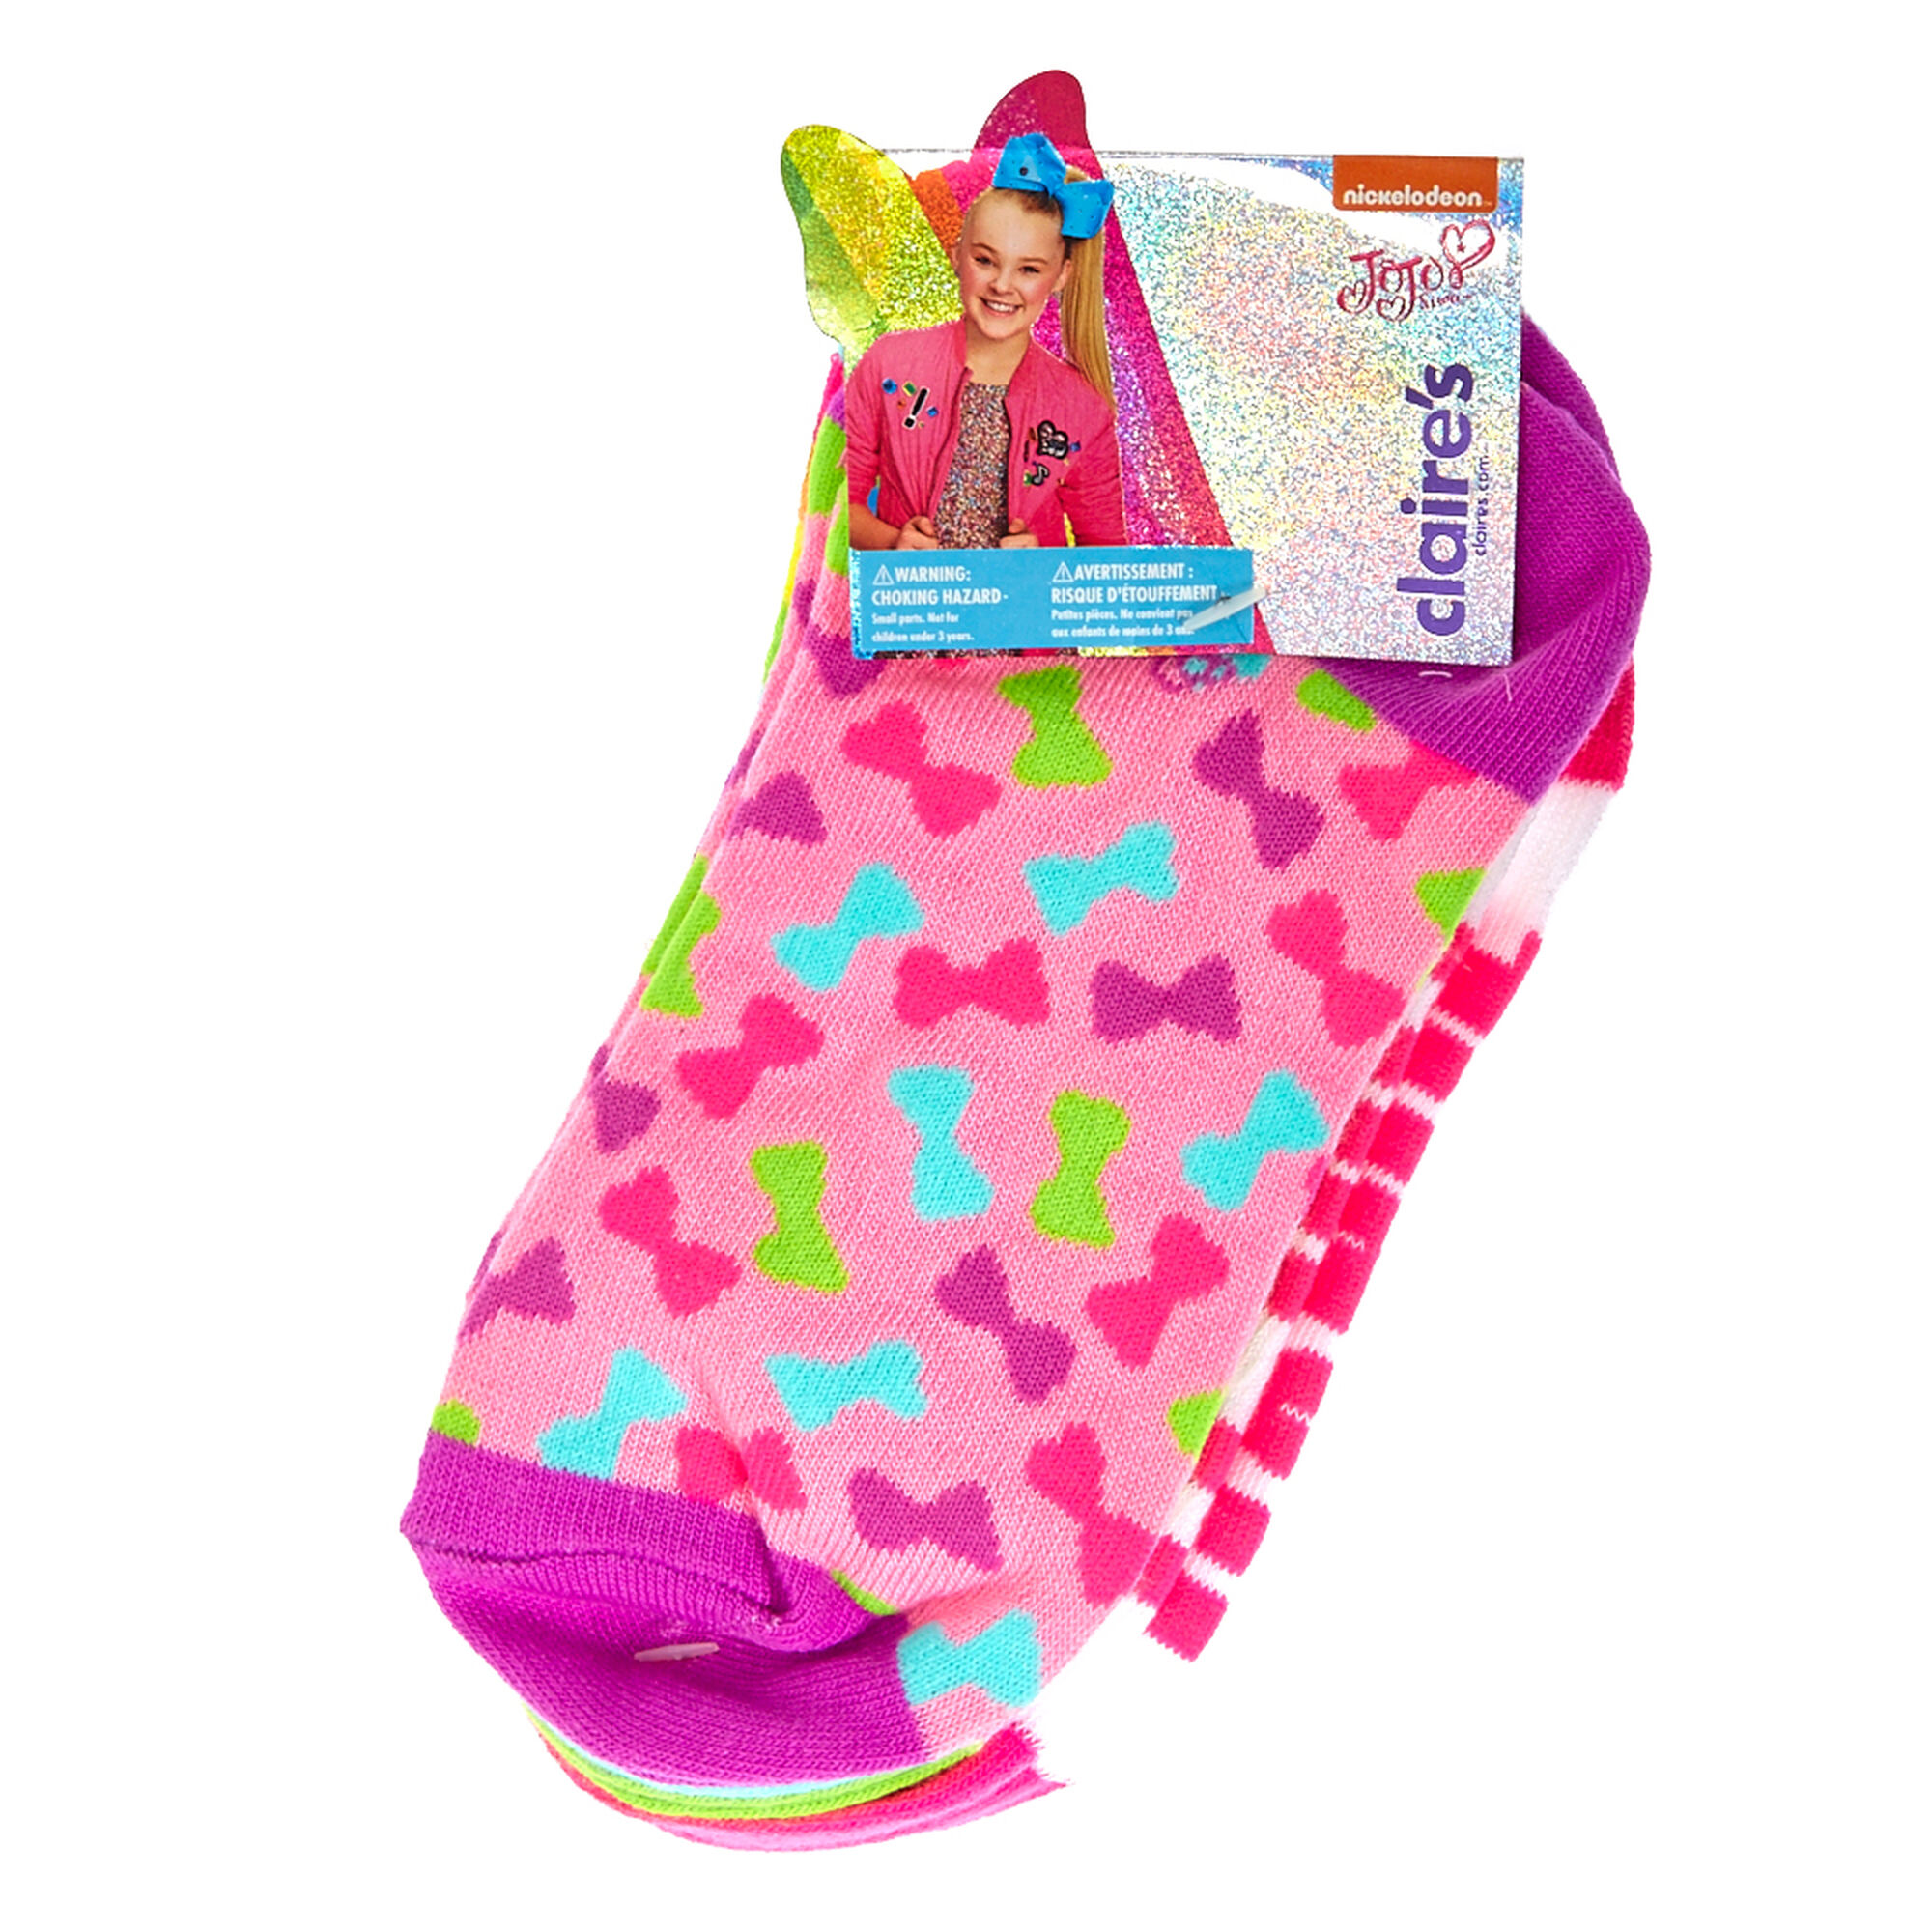 20fb458d3 ... JoJo Siwa trade  4 Pack Ankle Socks